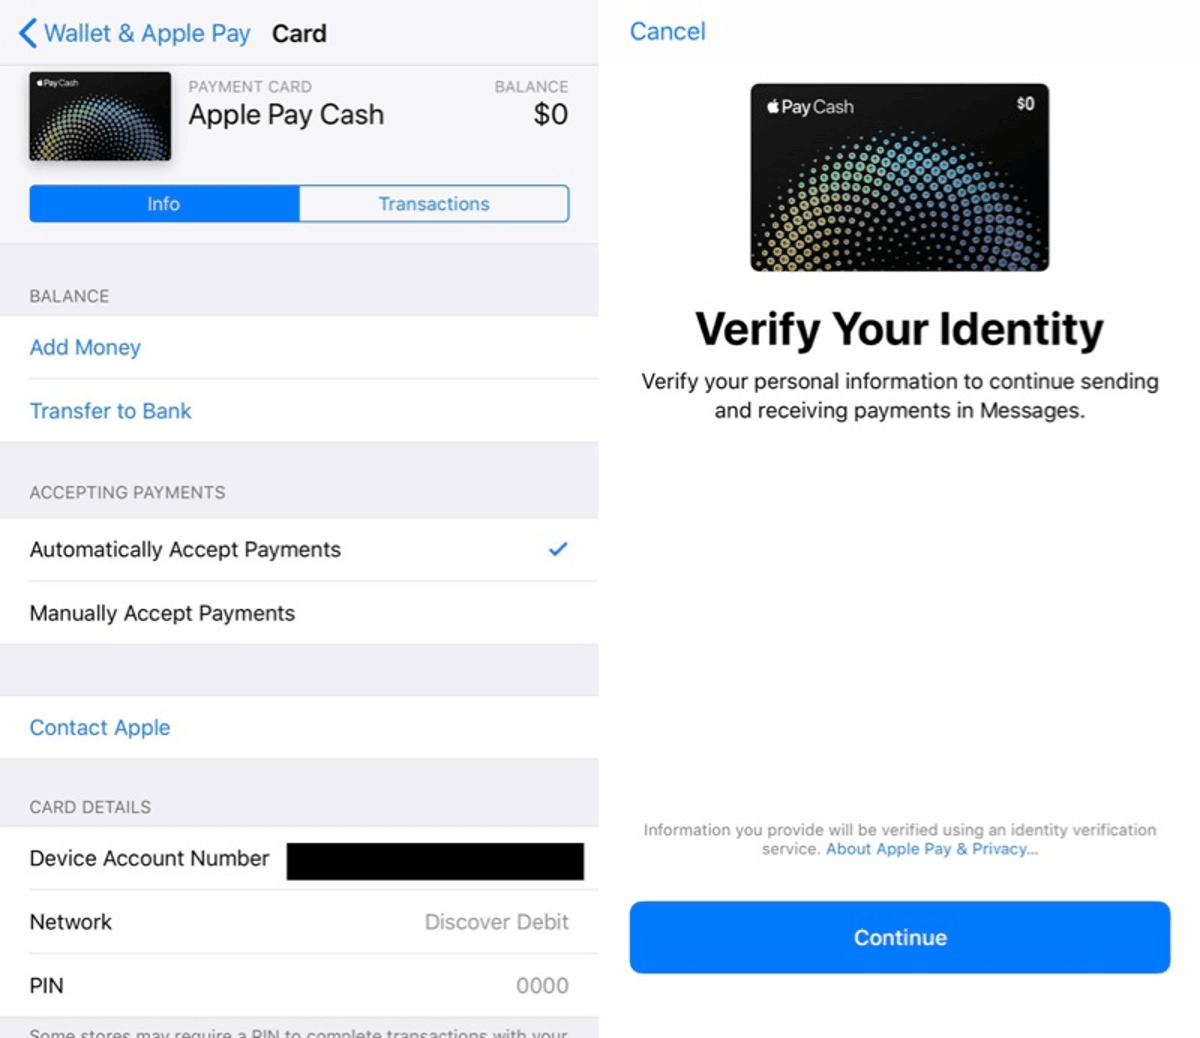 Apple Pay Cash - Settings